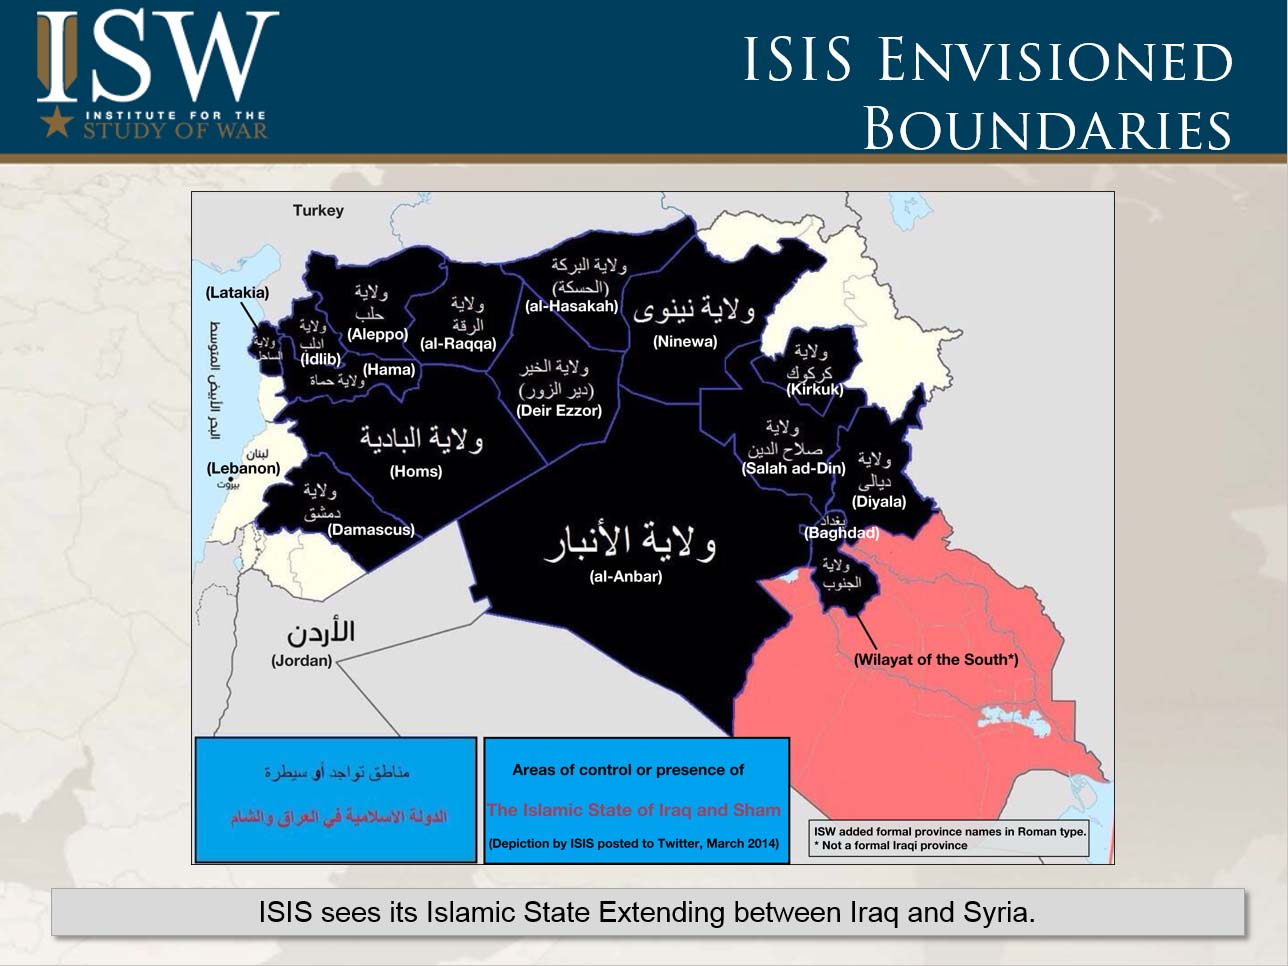 ISIS envisioned borders